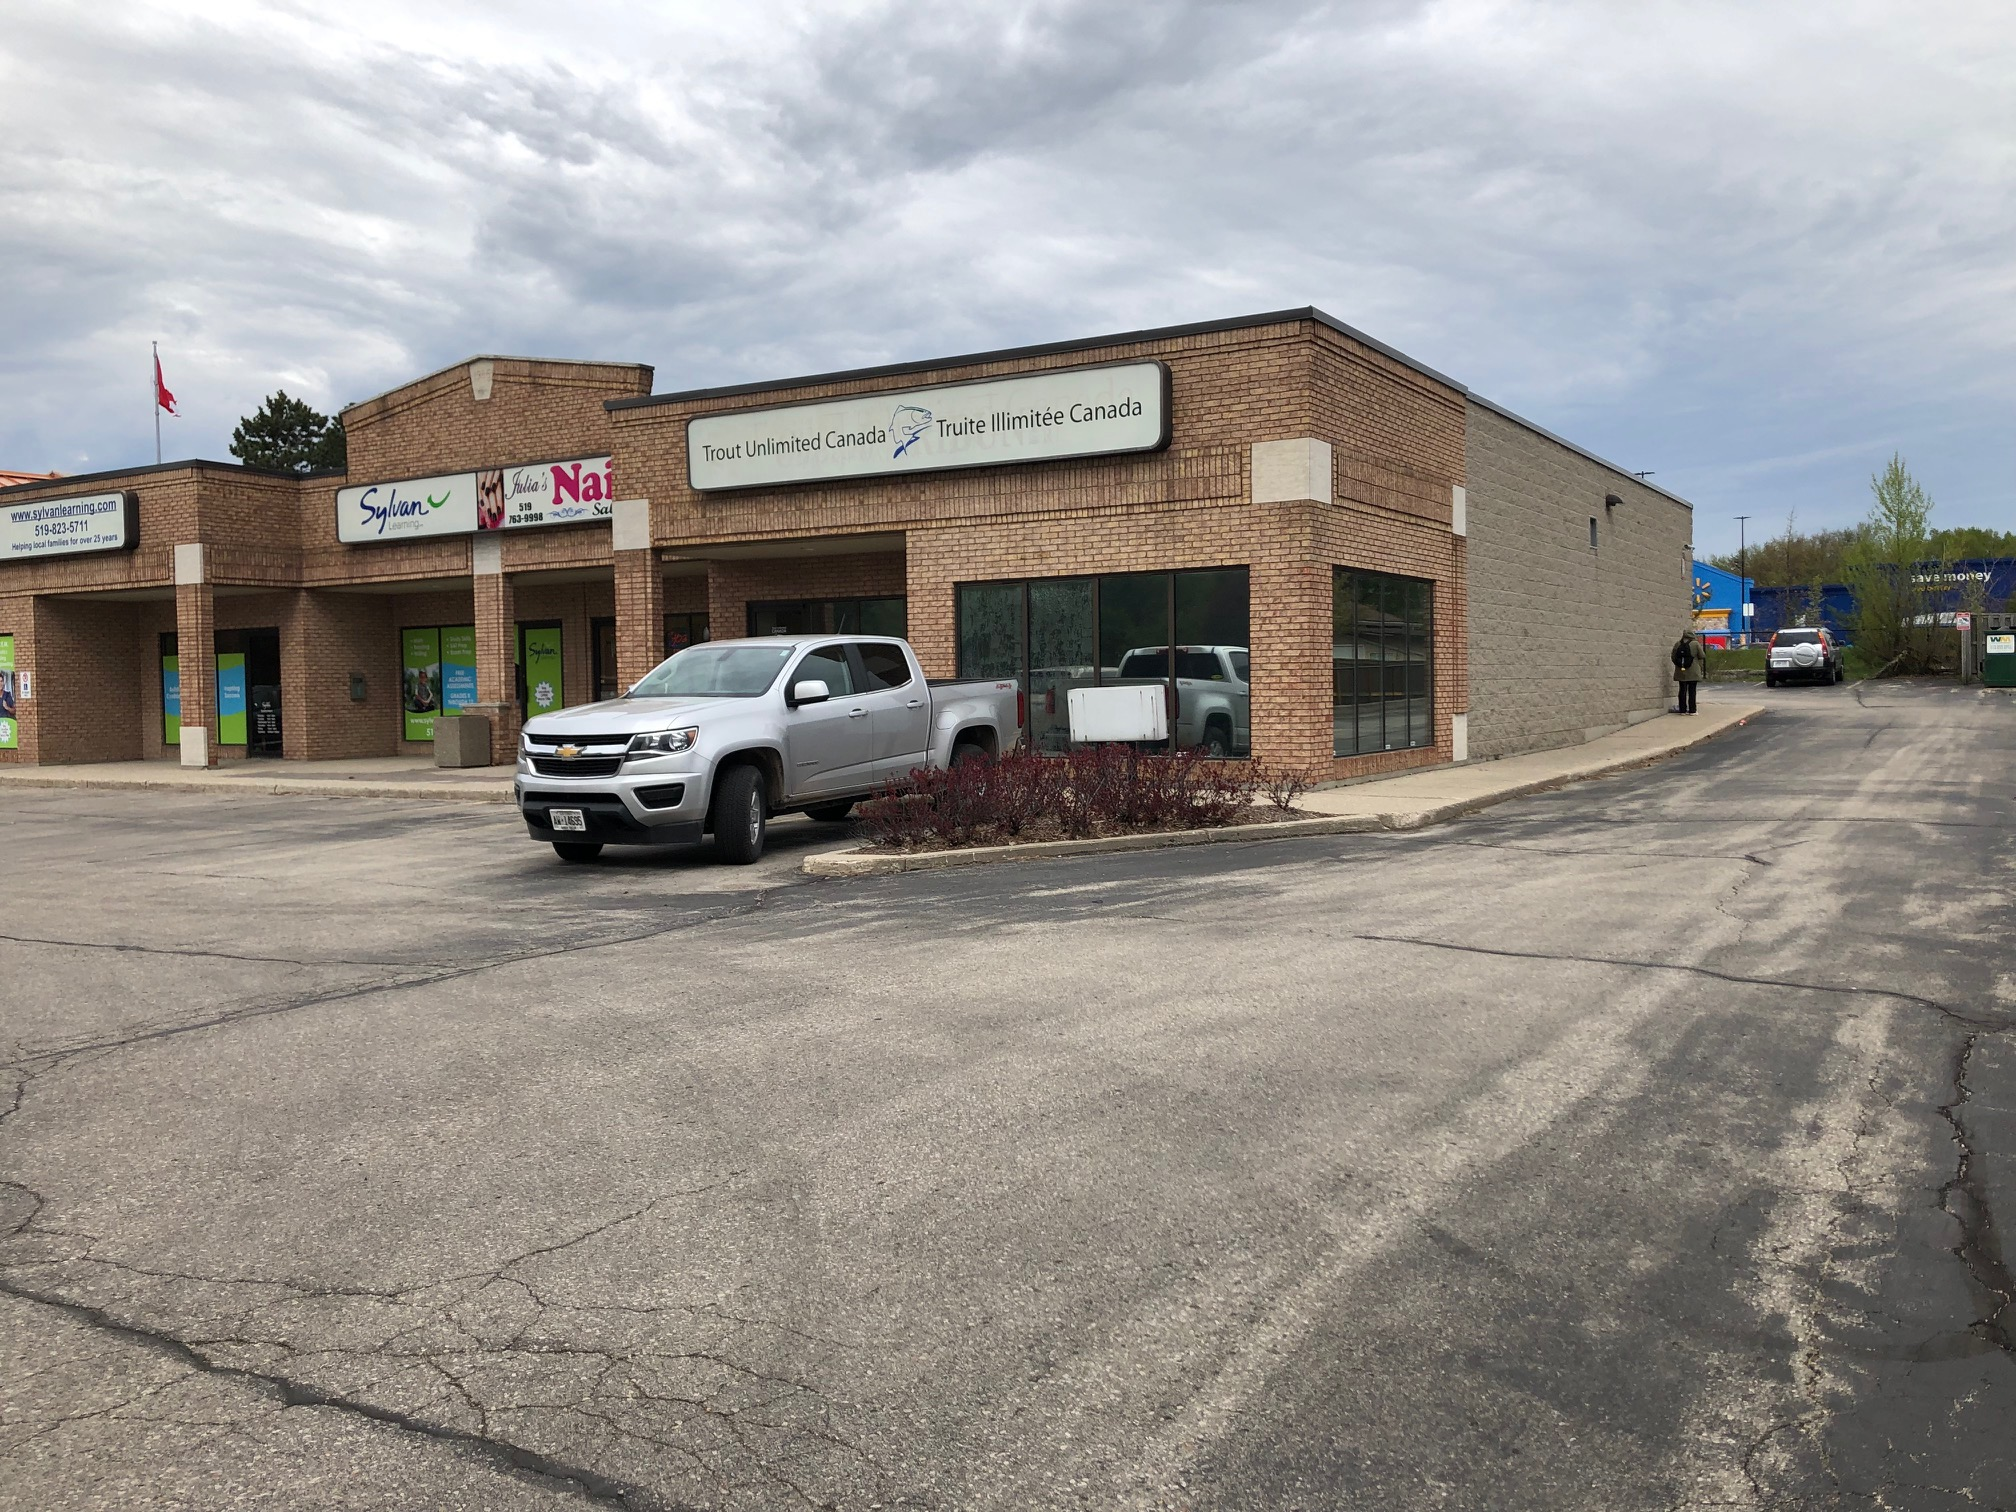 27 Woodlawn Road West (Unit 1), Guelph | Office for Lease